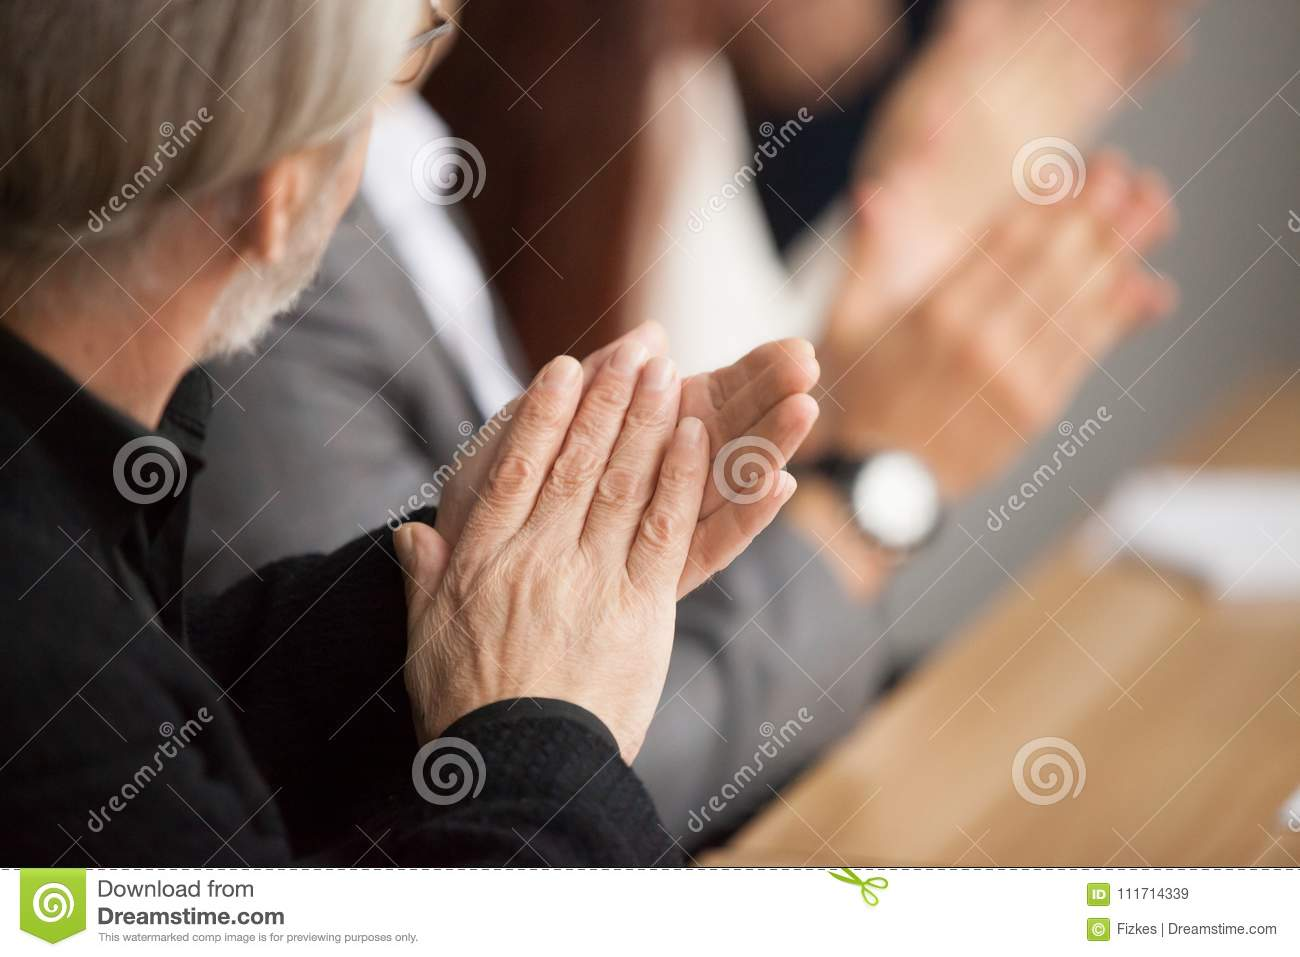 Senior gray-haired businessman clapping hands attending conferen